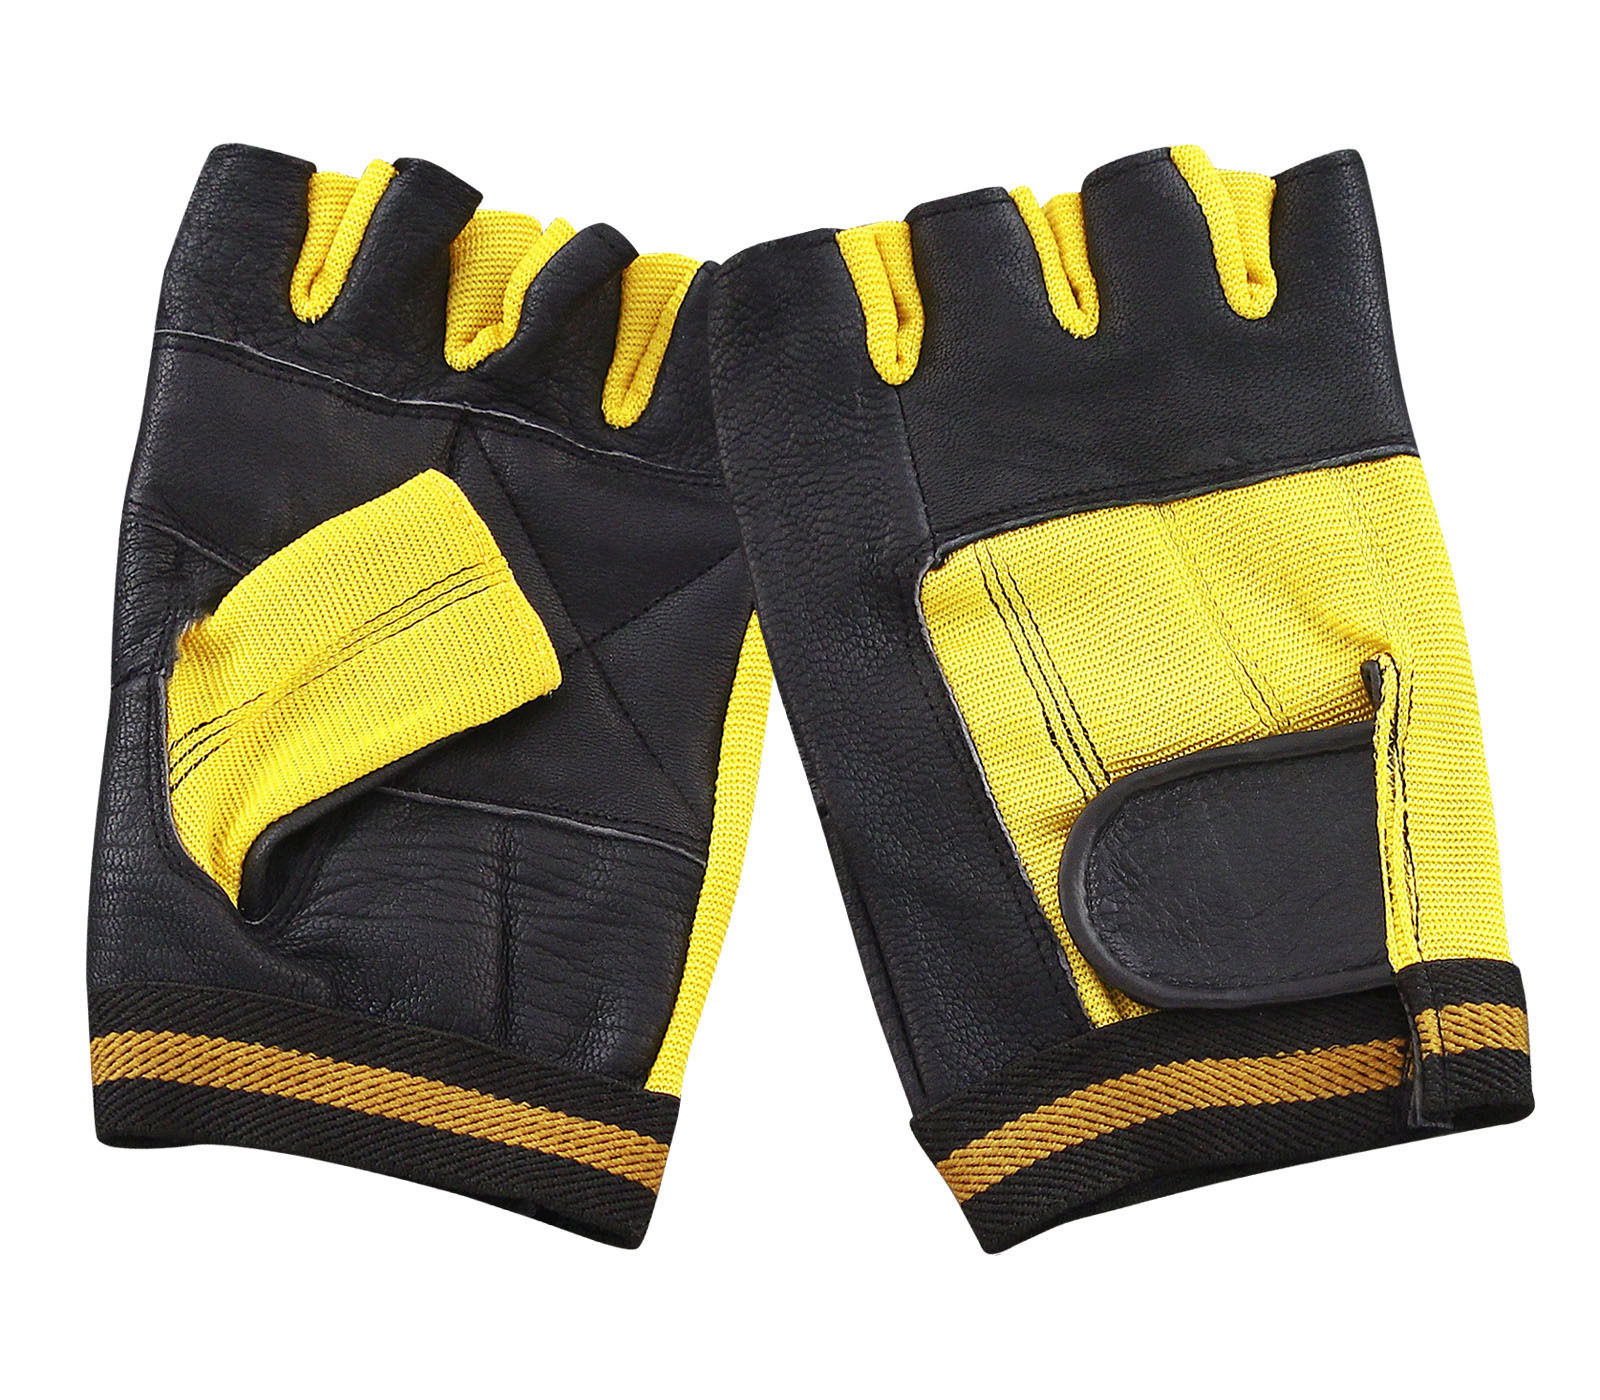 Driving gloves for sale philippines -  3 49